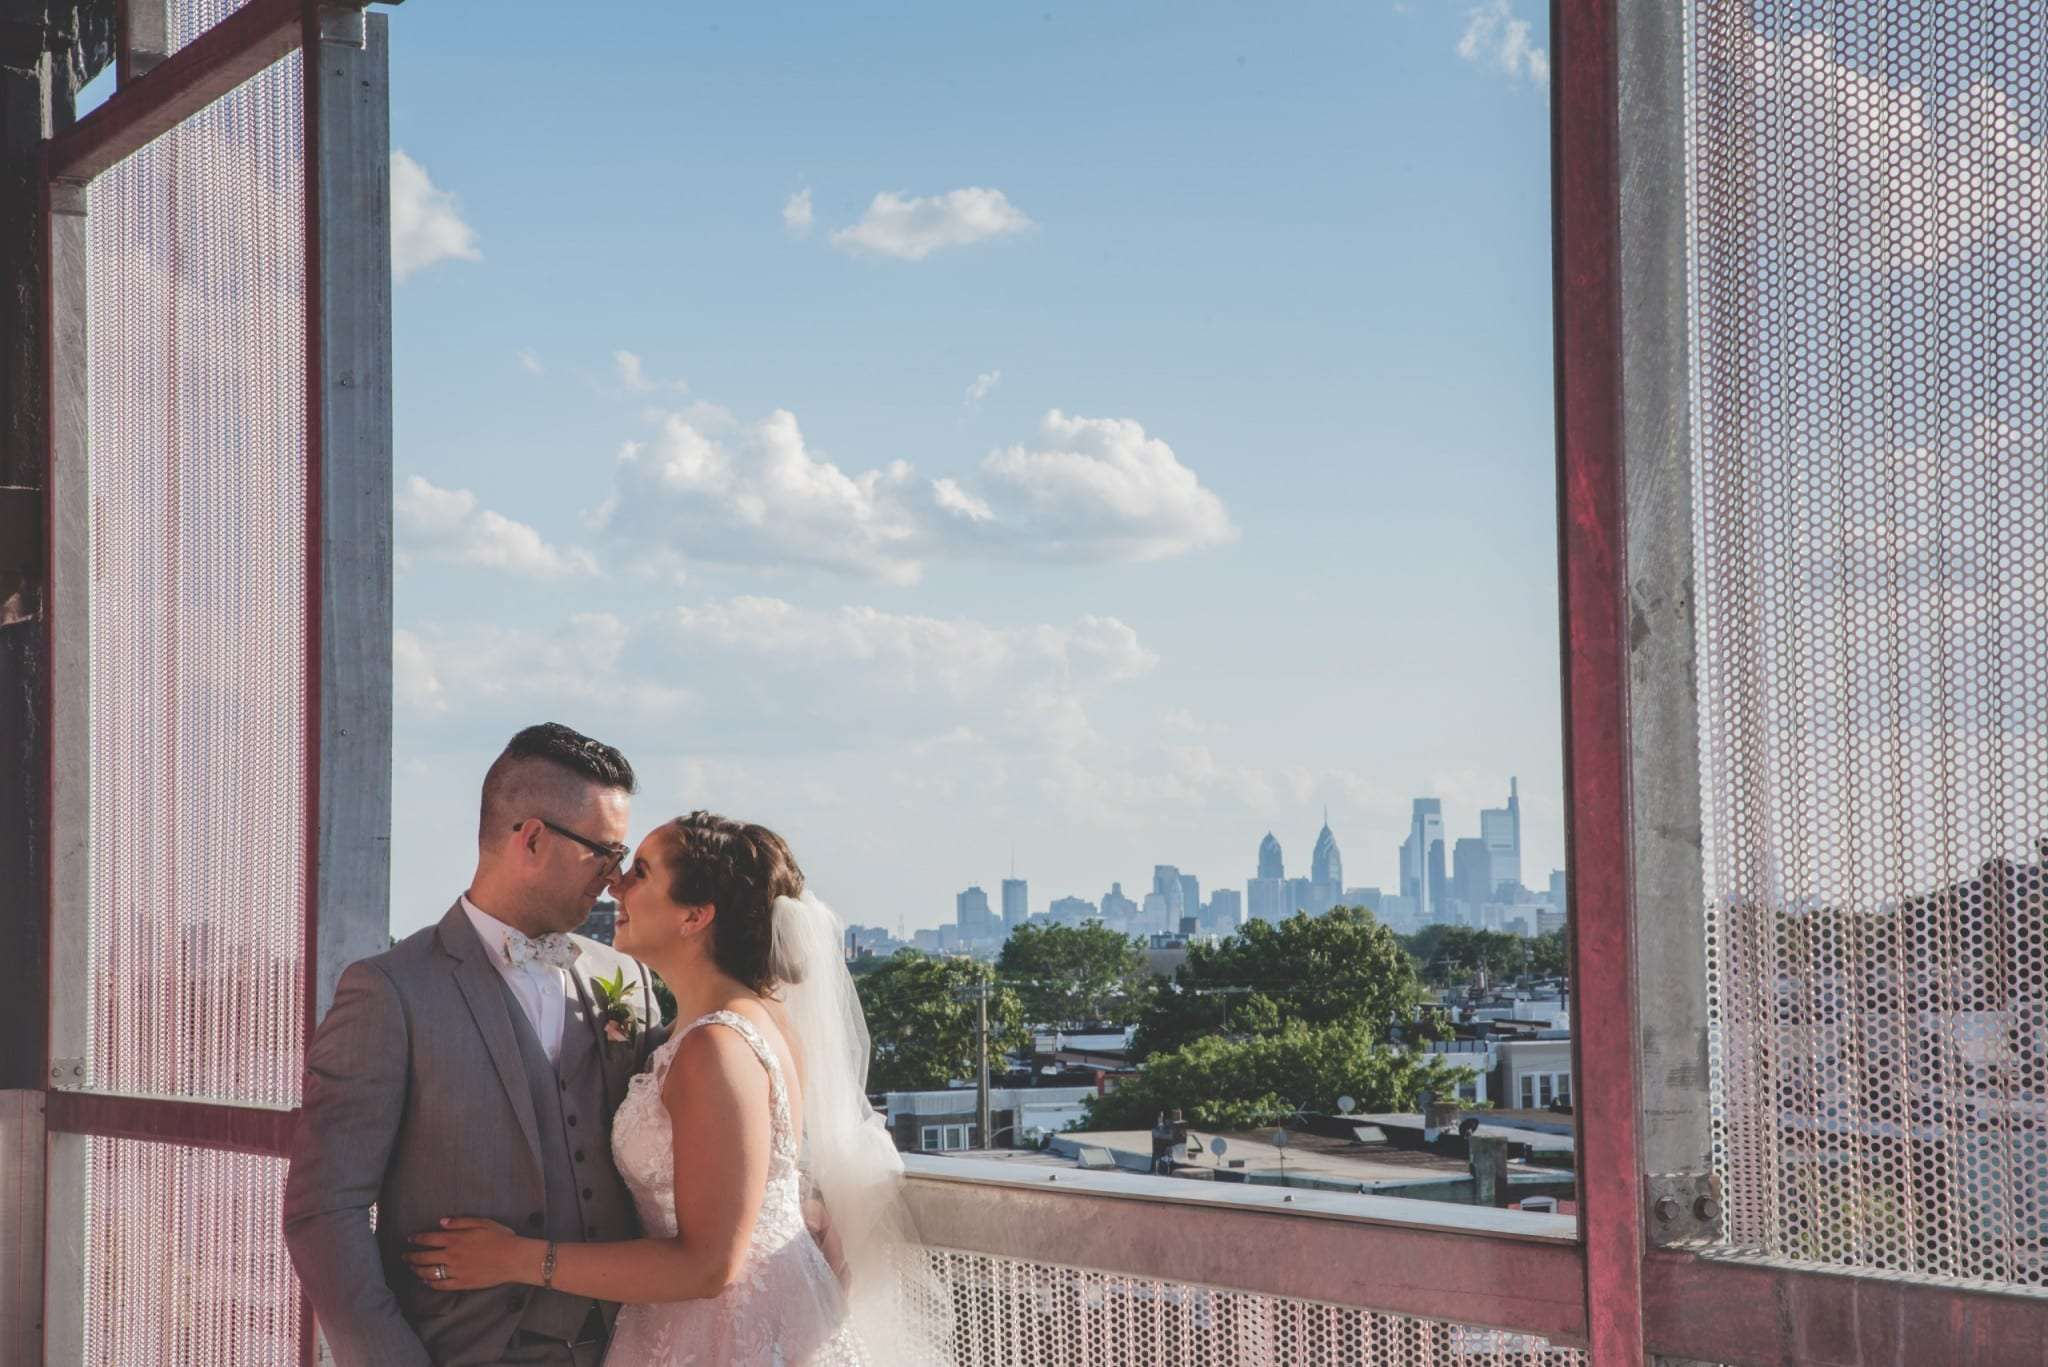 FAME philly wedding venue virtual tour